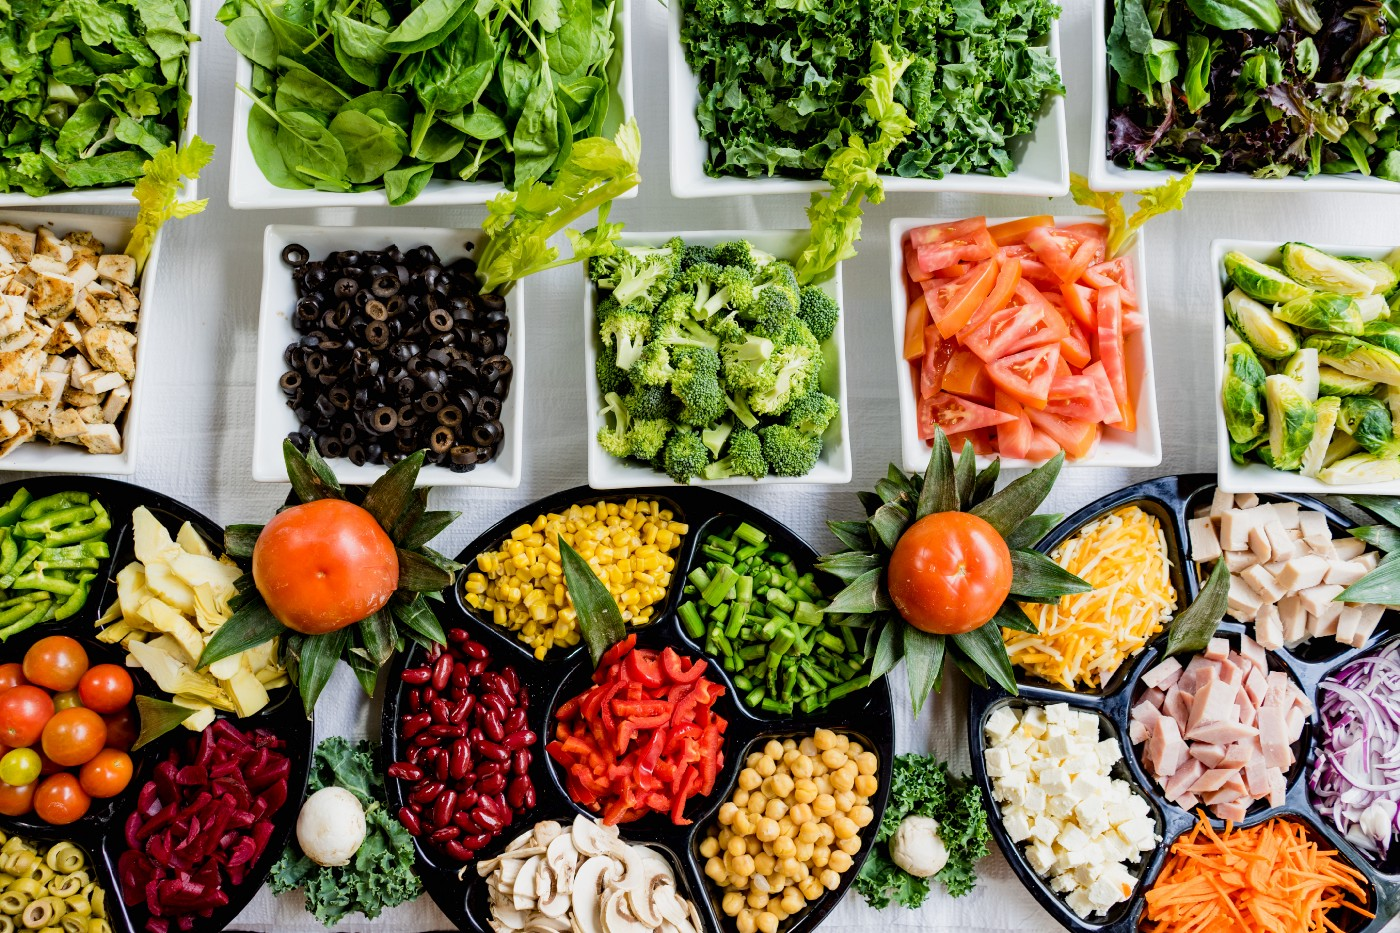 various vegetables and fruits; carrots, broccoli, tomato, celery, black olives, spinich and onions; all set in black and white bowls.